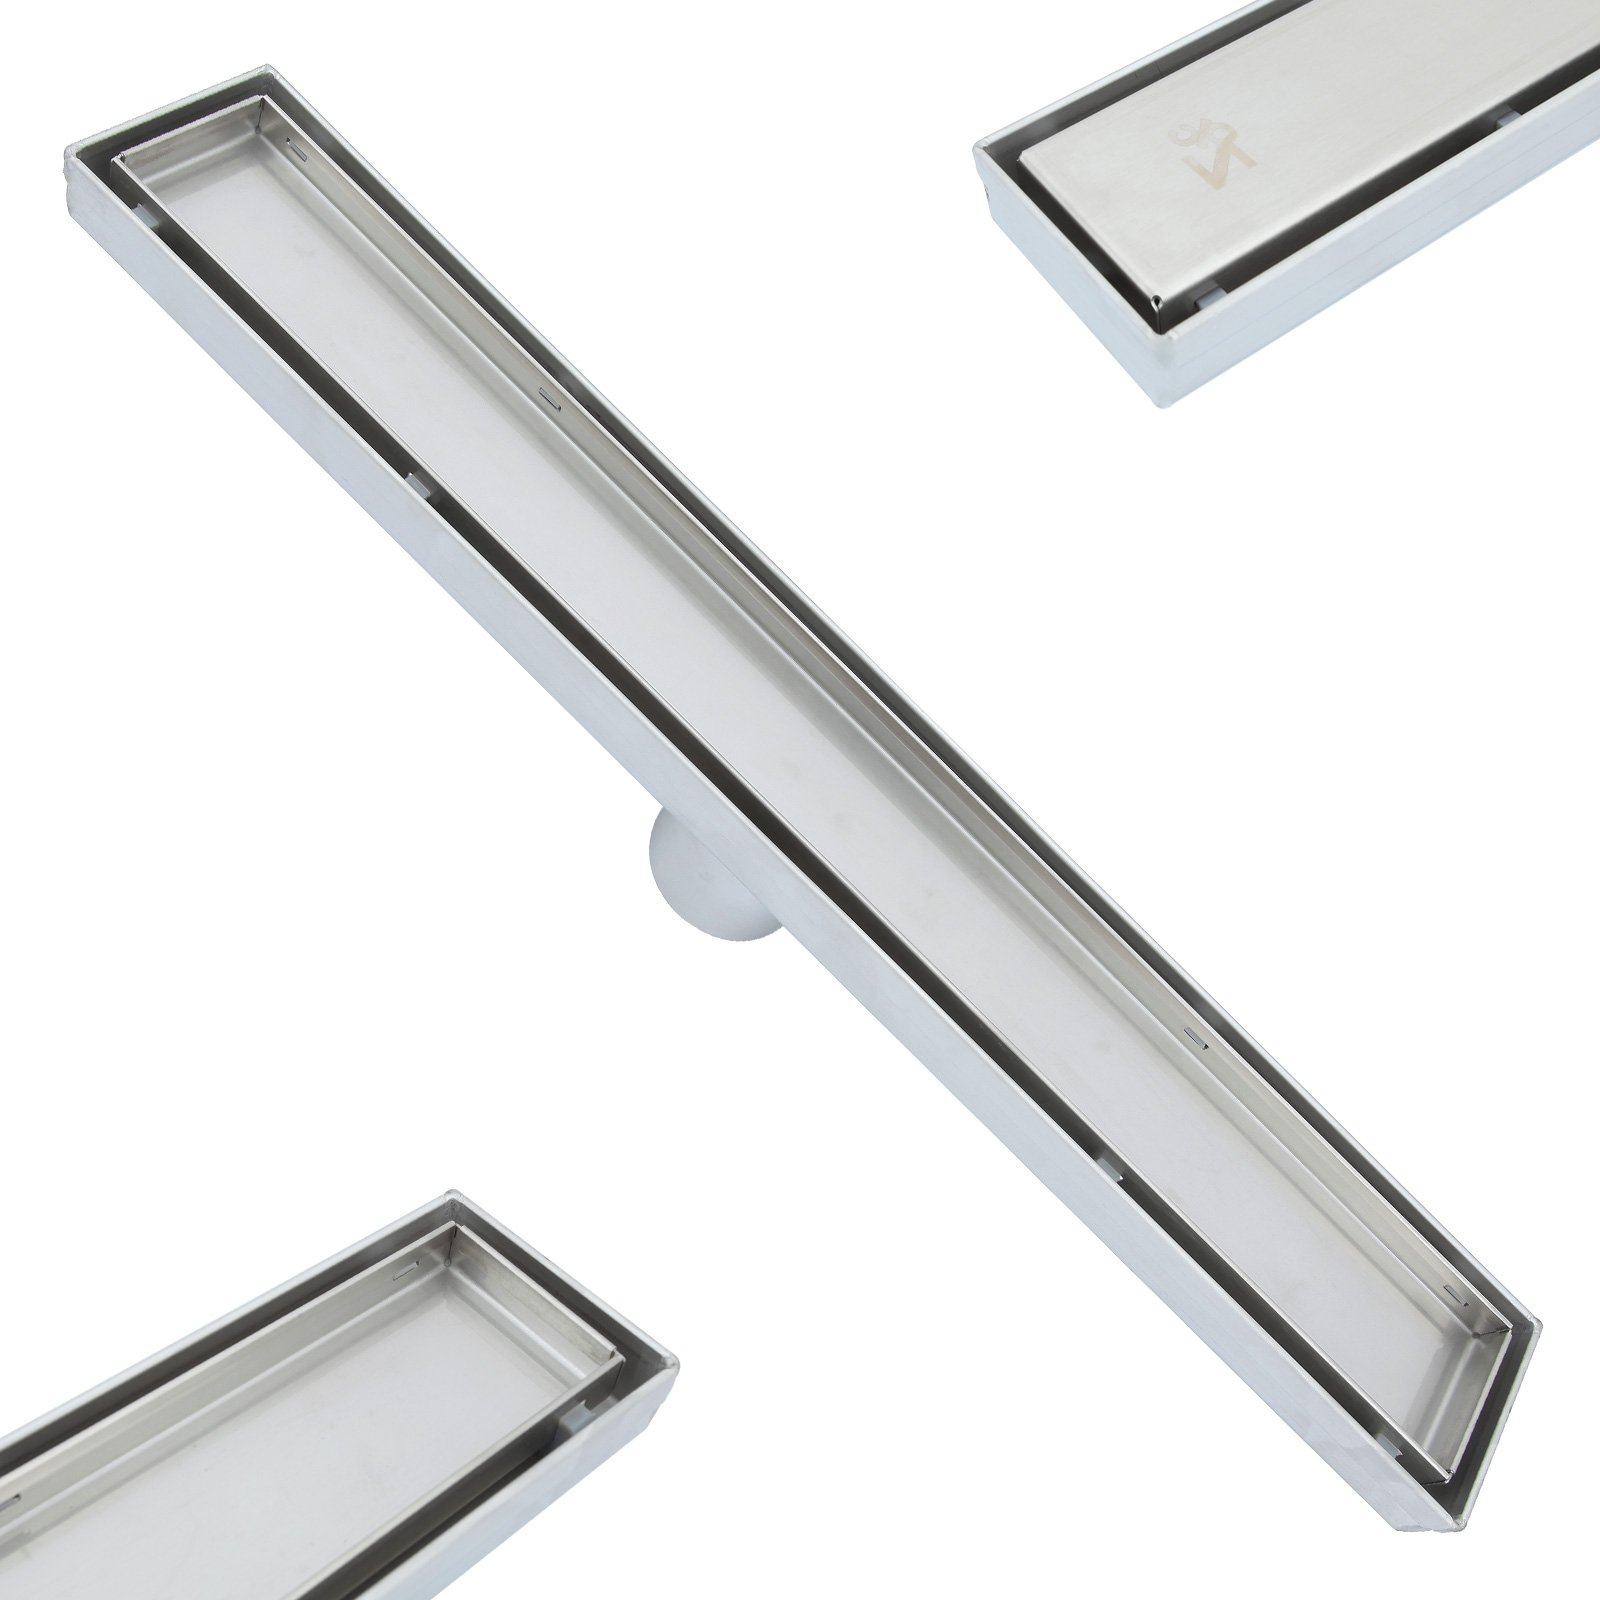 ZOIC 19.68/23.62/27.56/31.49/35.43 inches Linear Stealth Tile Insert Floor Grate Bathroom Shower Waste Drain-304 stainless steel (23.62''(600MM)) by ZOIC